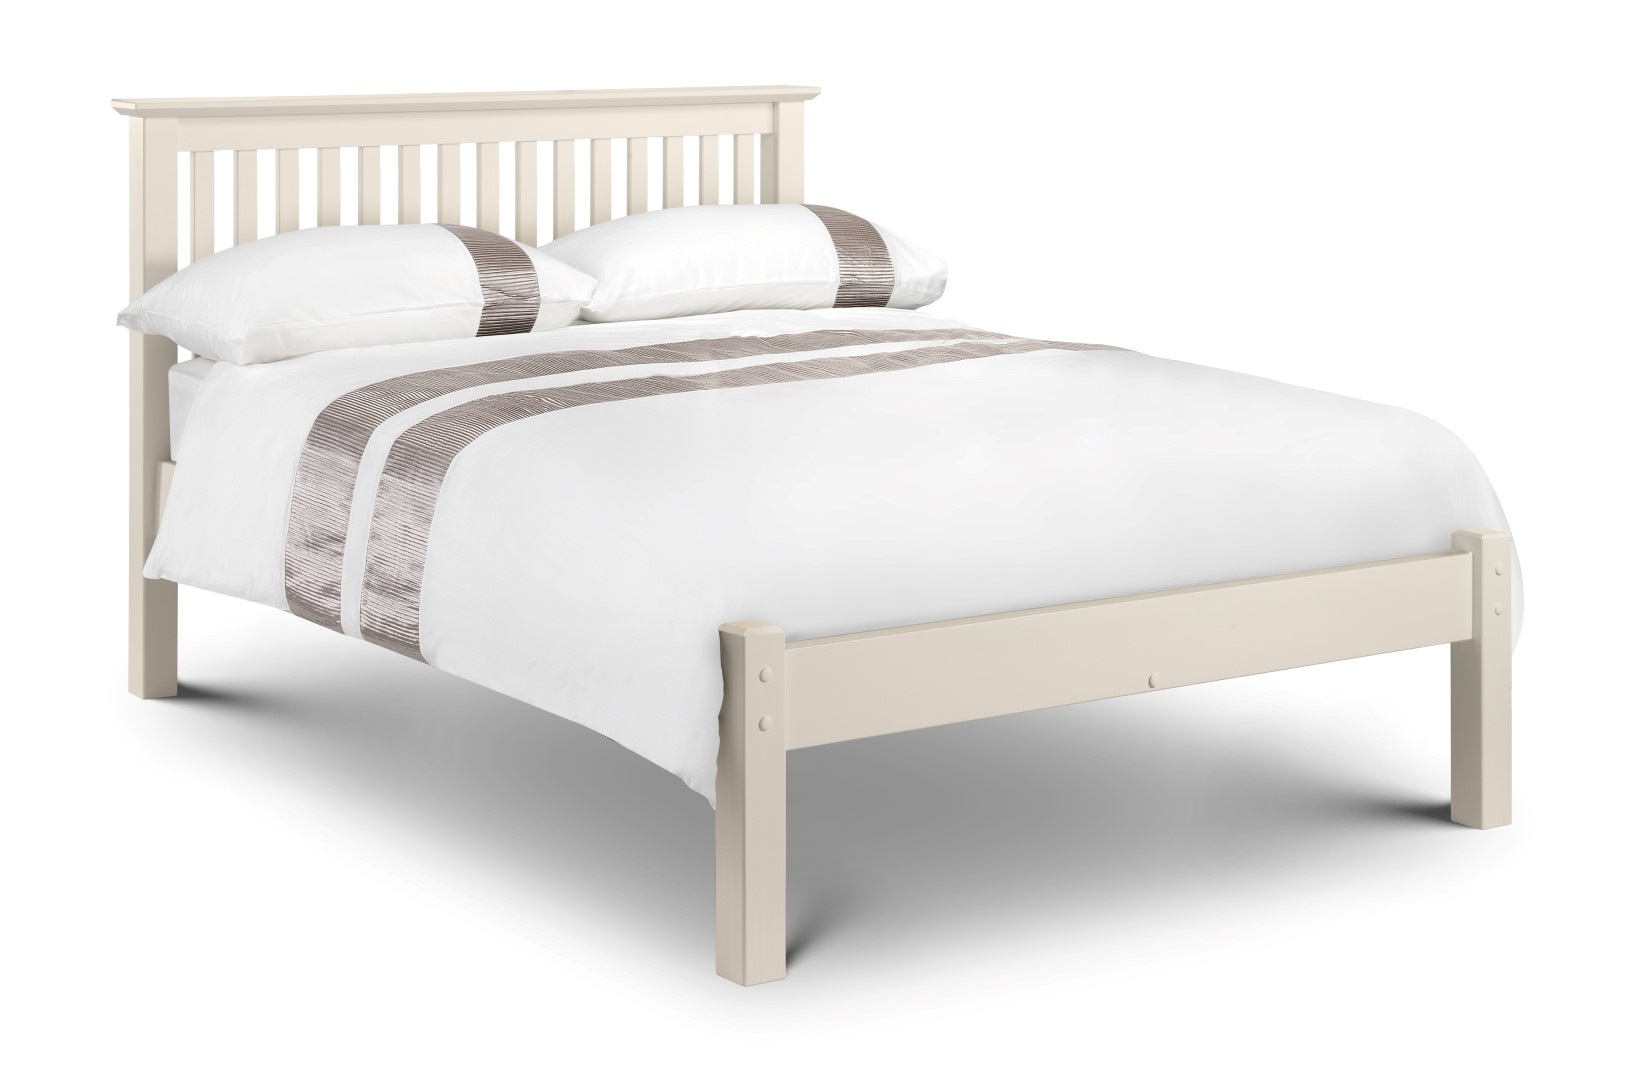 Barcelona Stone White Low Foot End Solid Pine King Size Bed